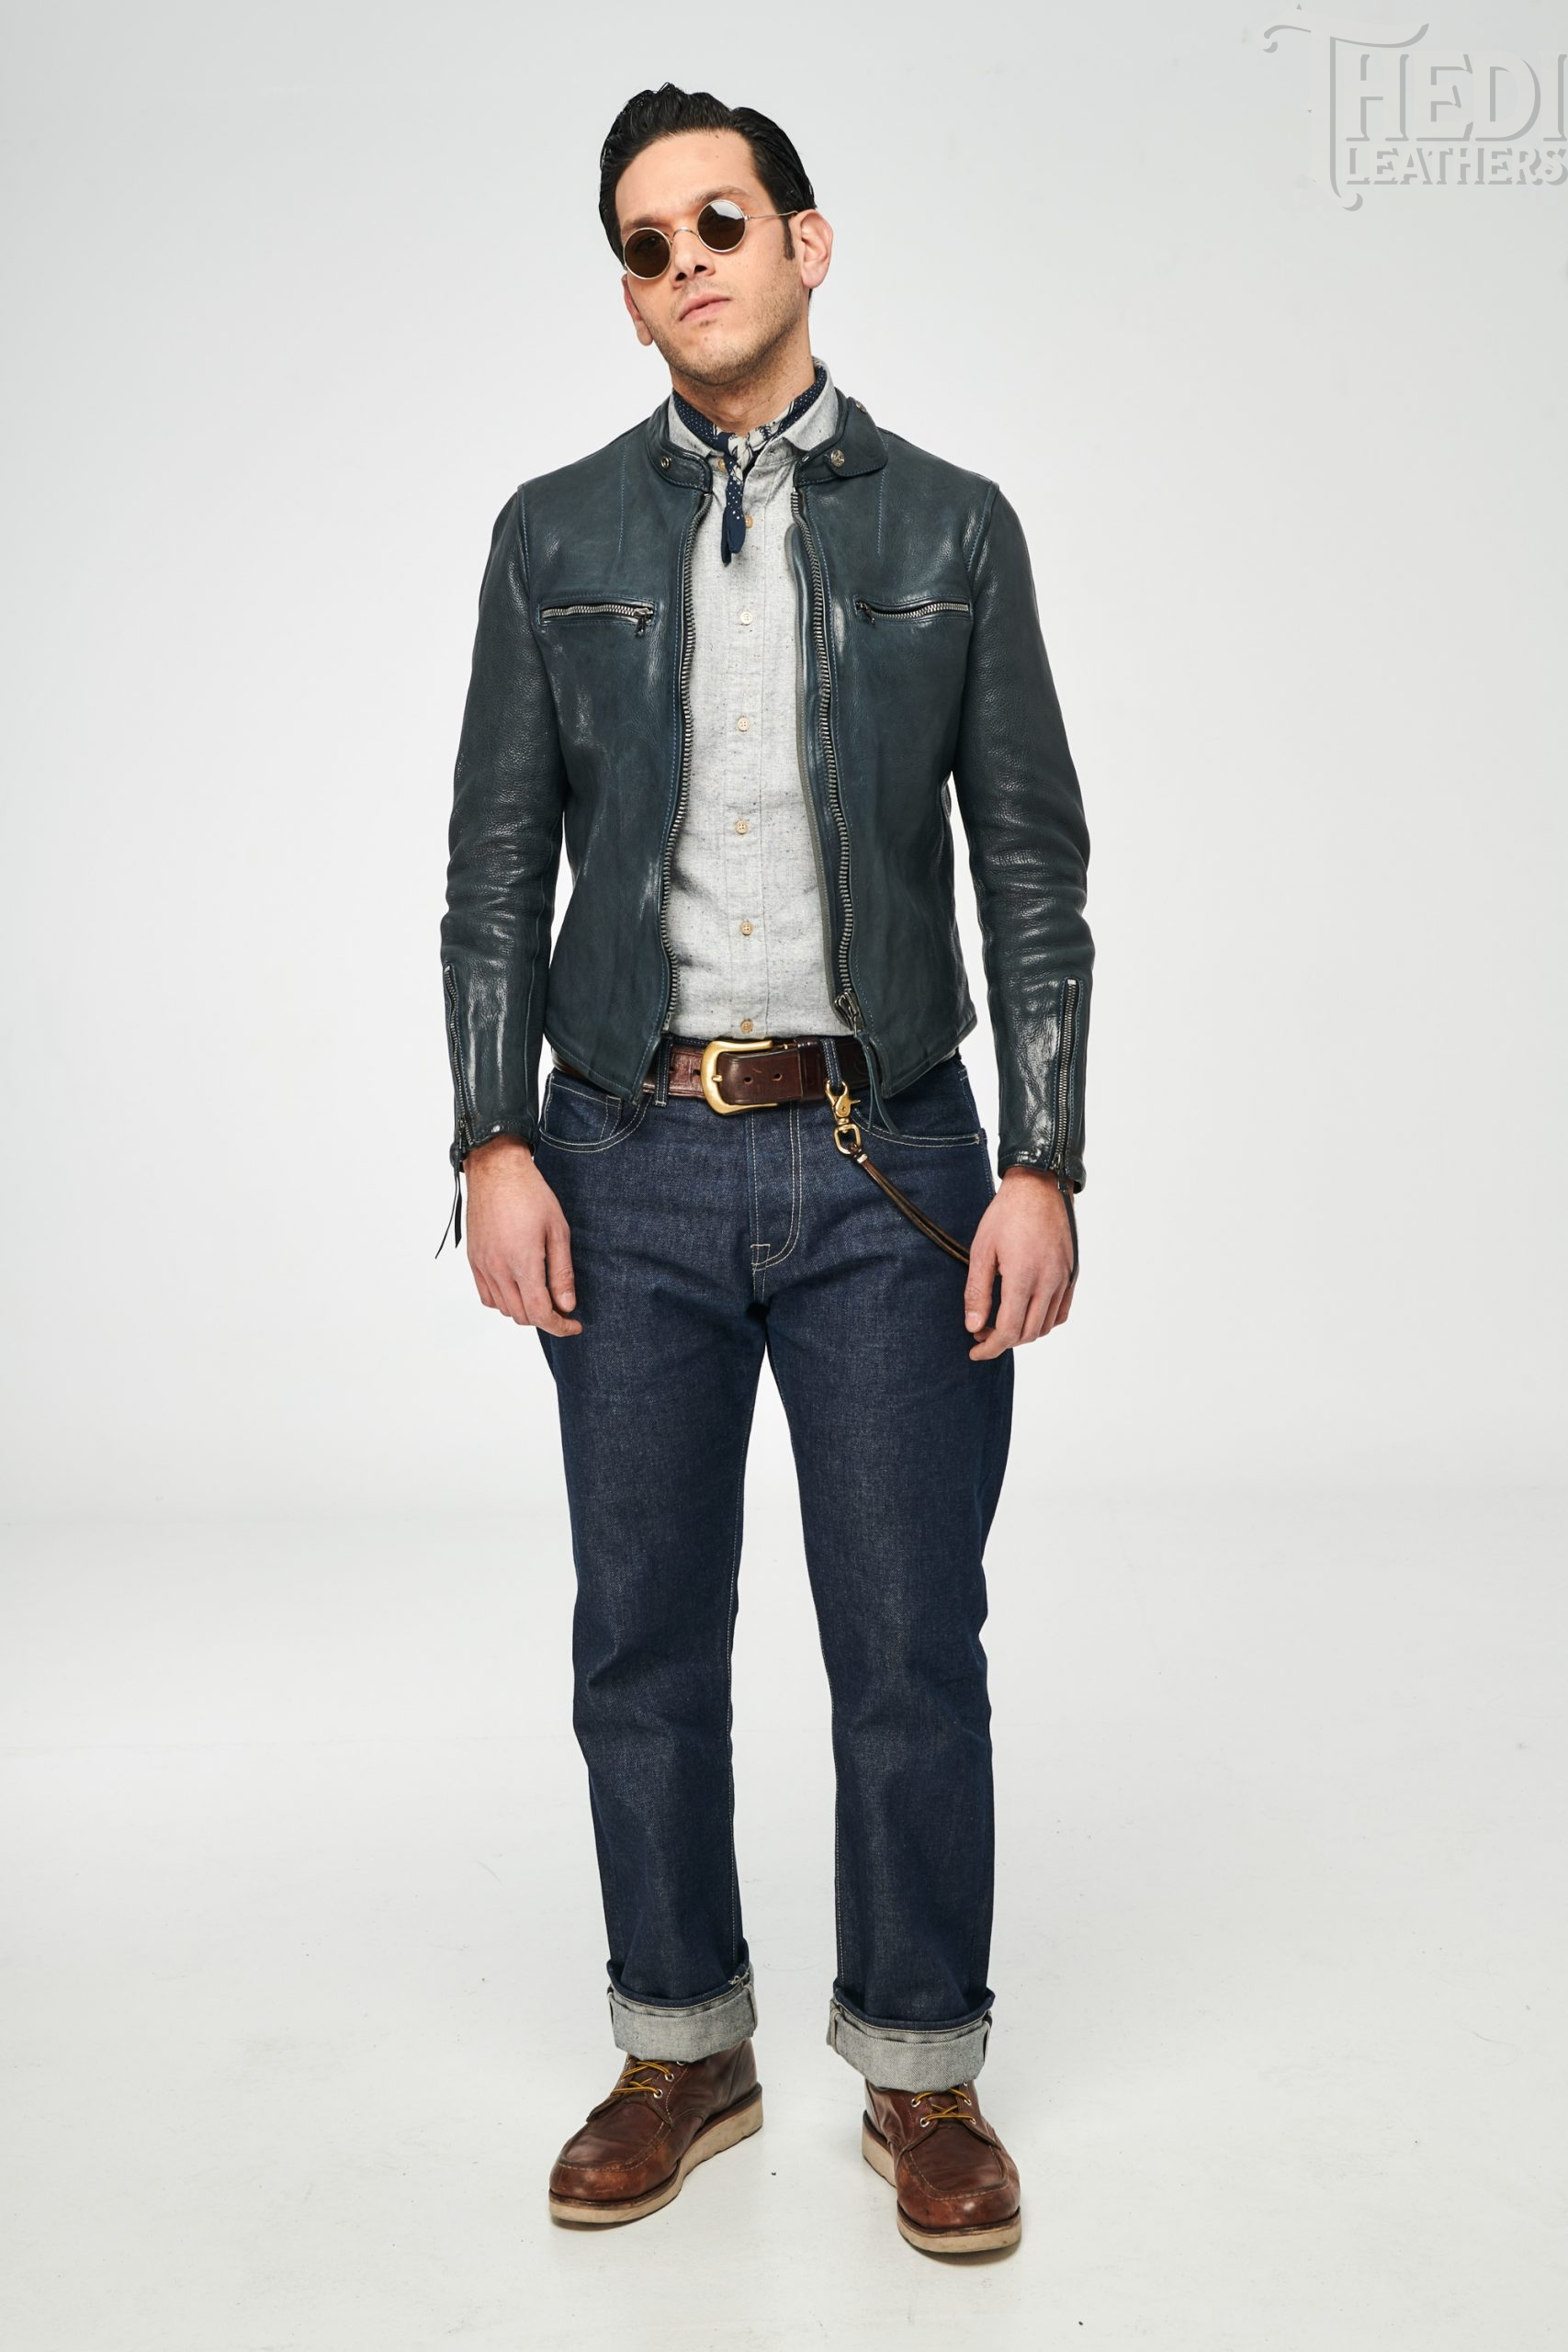 https://thedi-leathers.com/wp-content/uploads/2019/10/CCT-B1260-UN-LONG-1-1-scaled.jpg